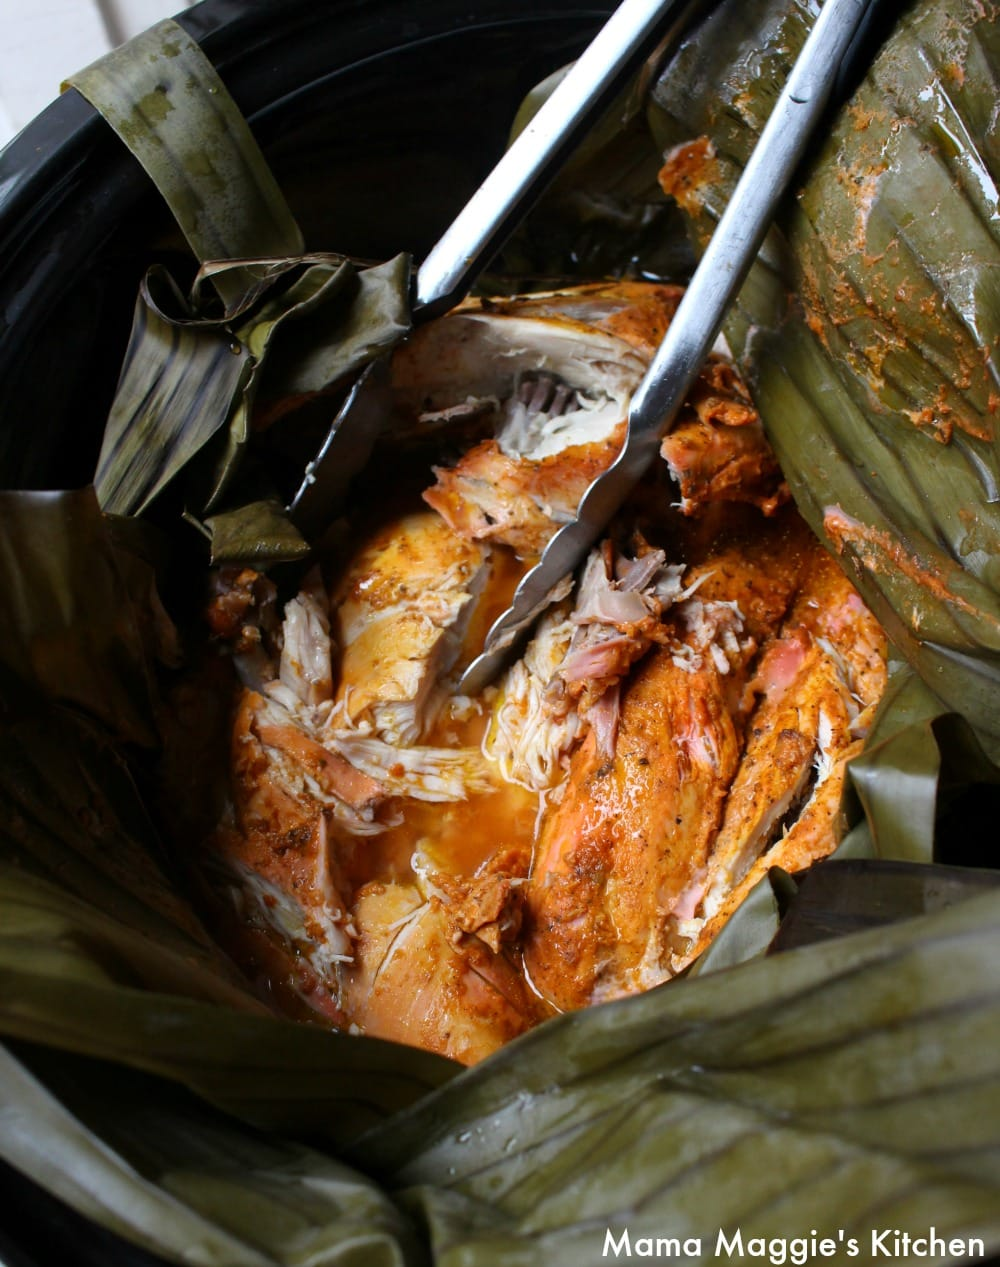 Tongs removing the cooked Pollo Pibil that is still inside the banana leaves.